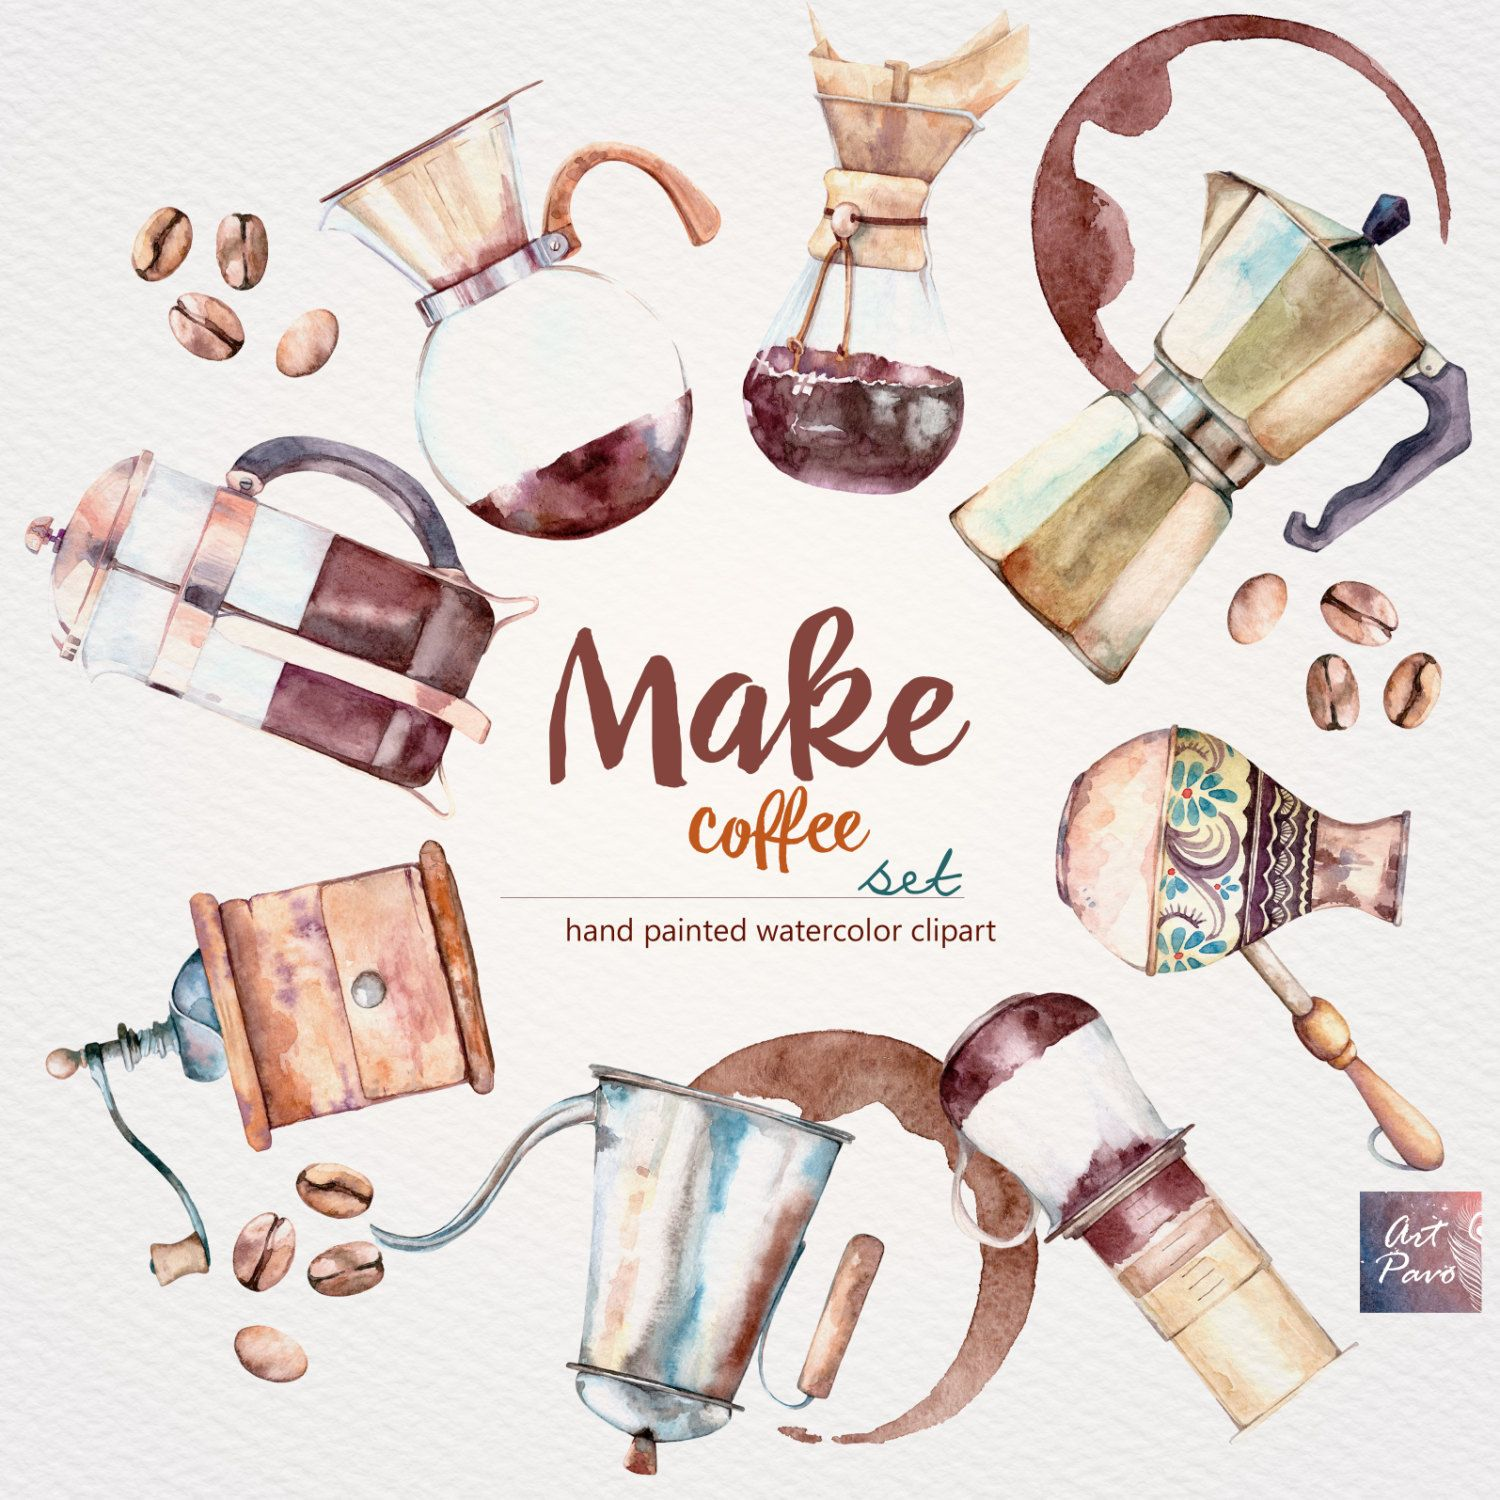 Make Coffee set, Sweets and Cups, Making Coffee Methods.